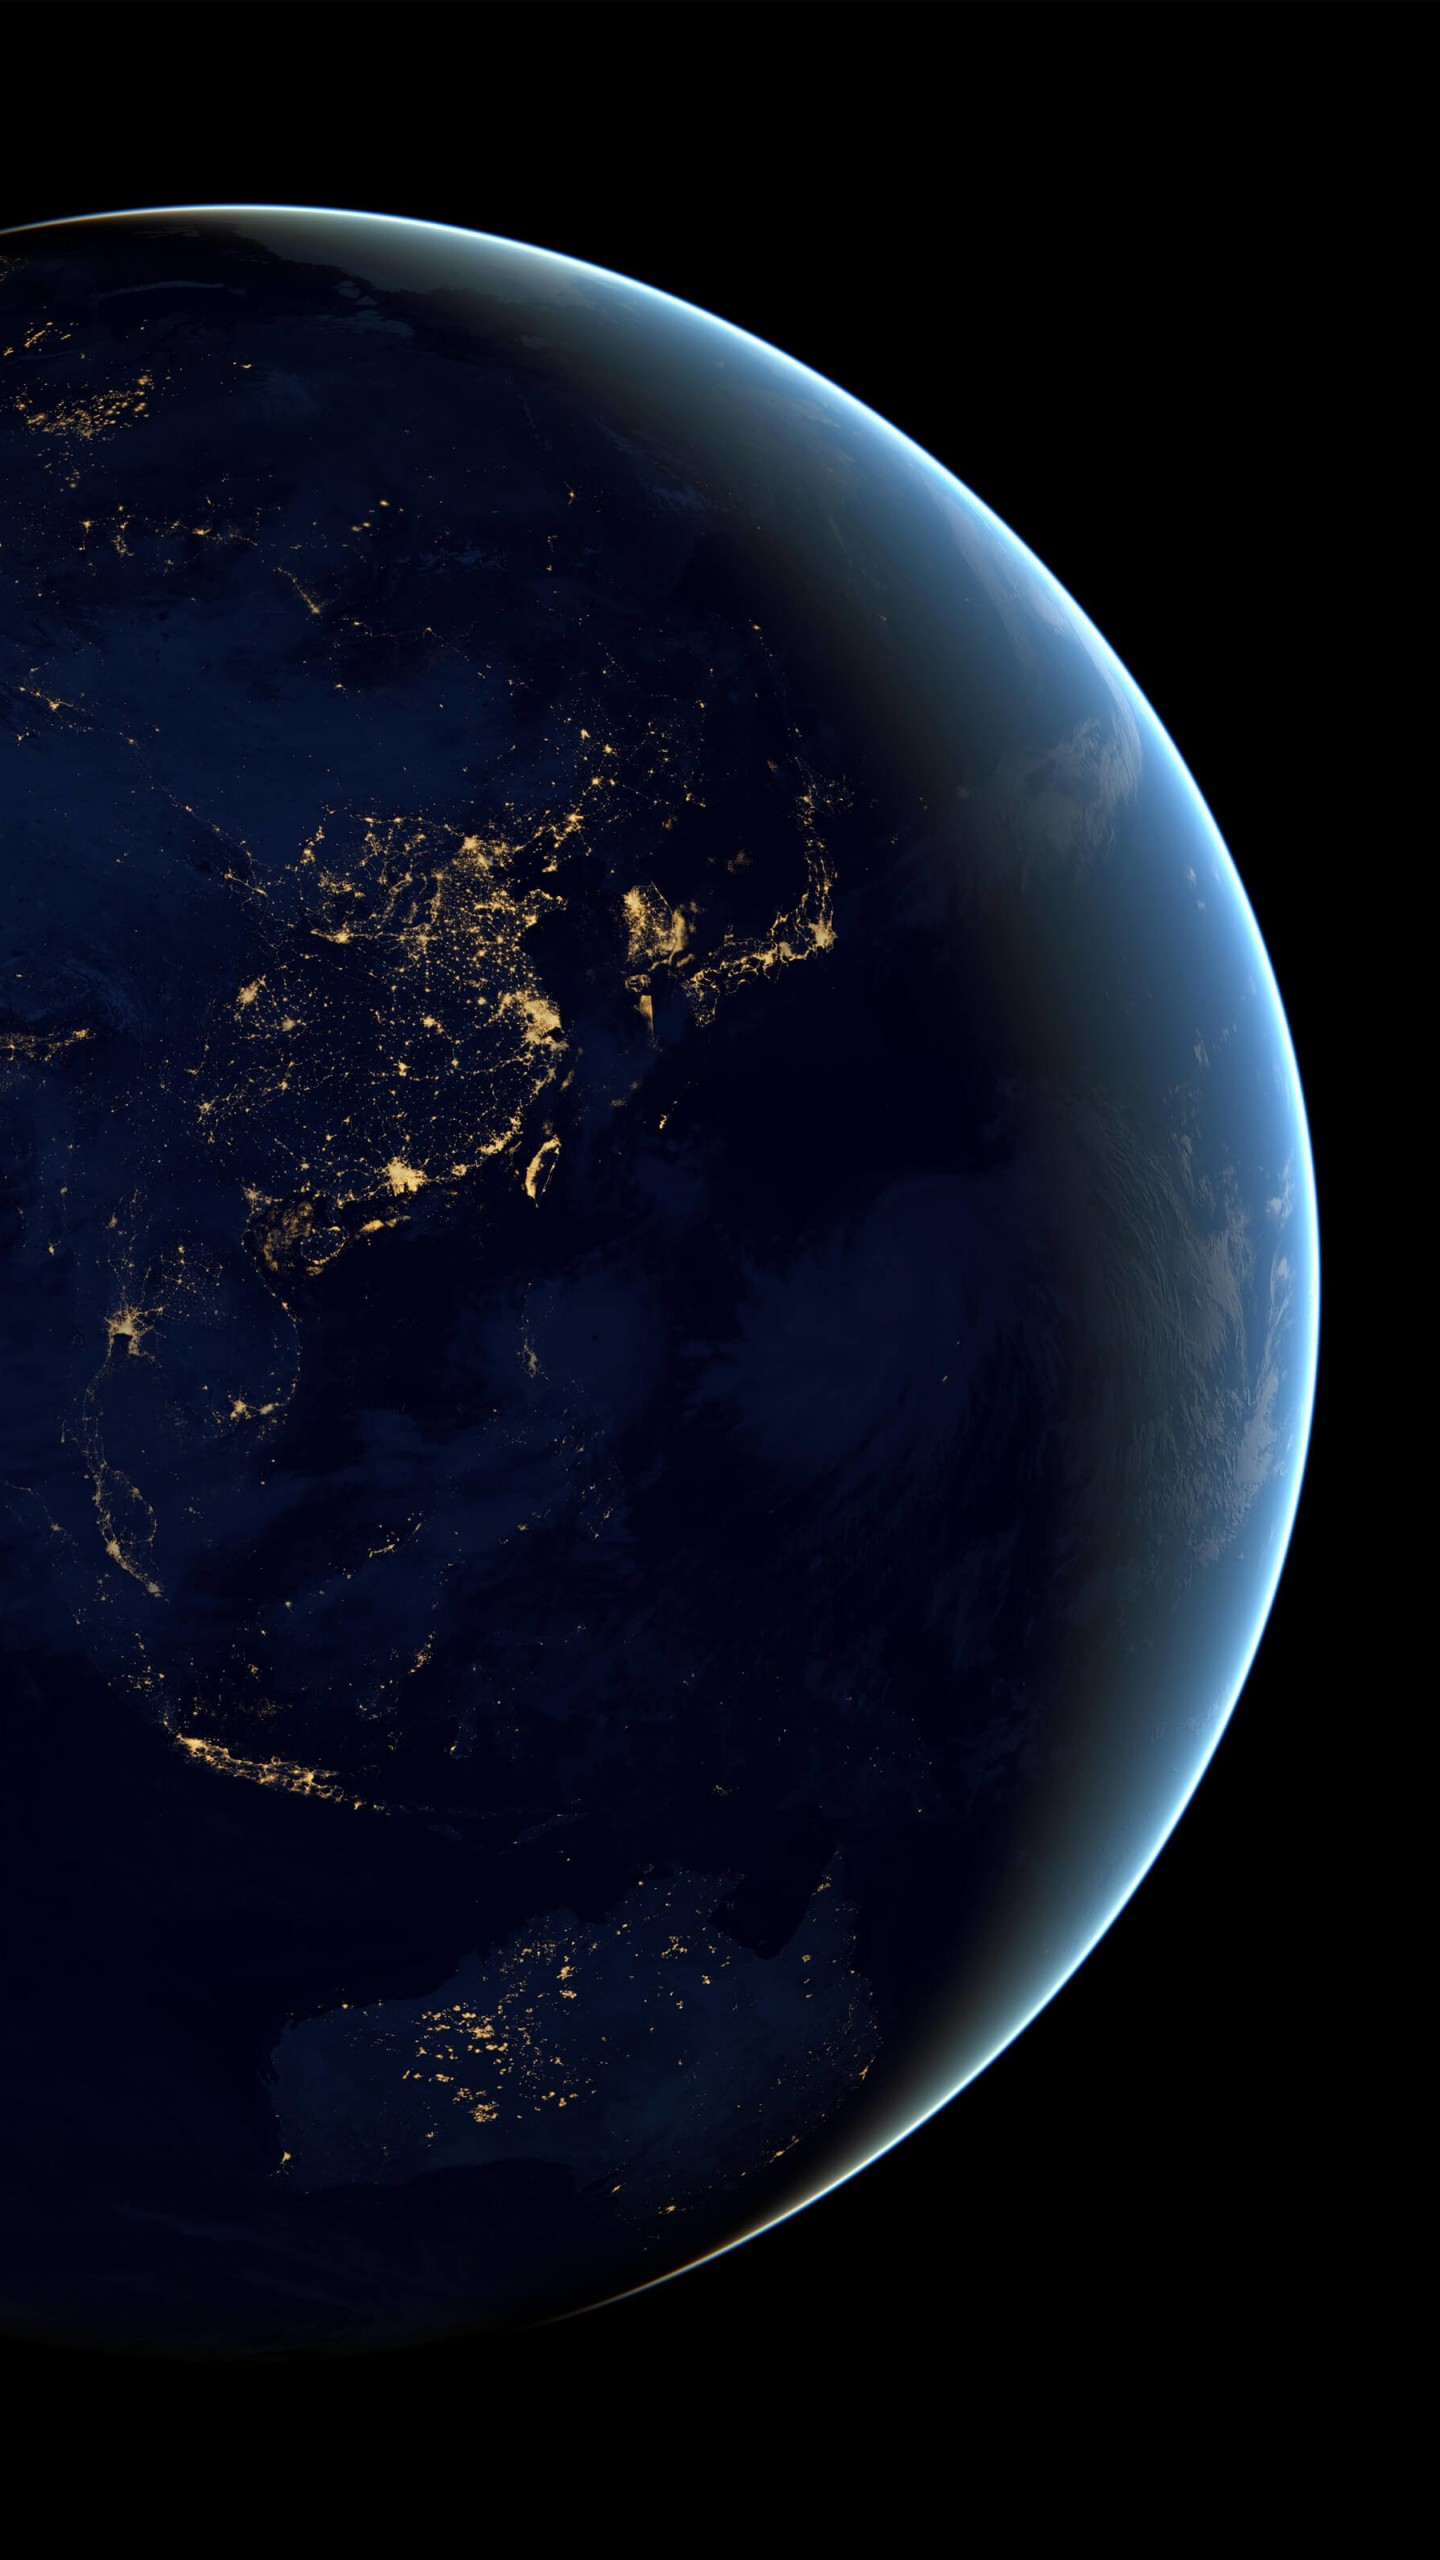 Earth At Night Seen From Space Wallpaper for LG G3